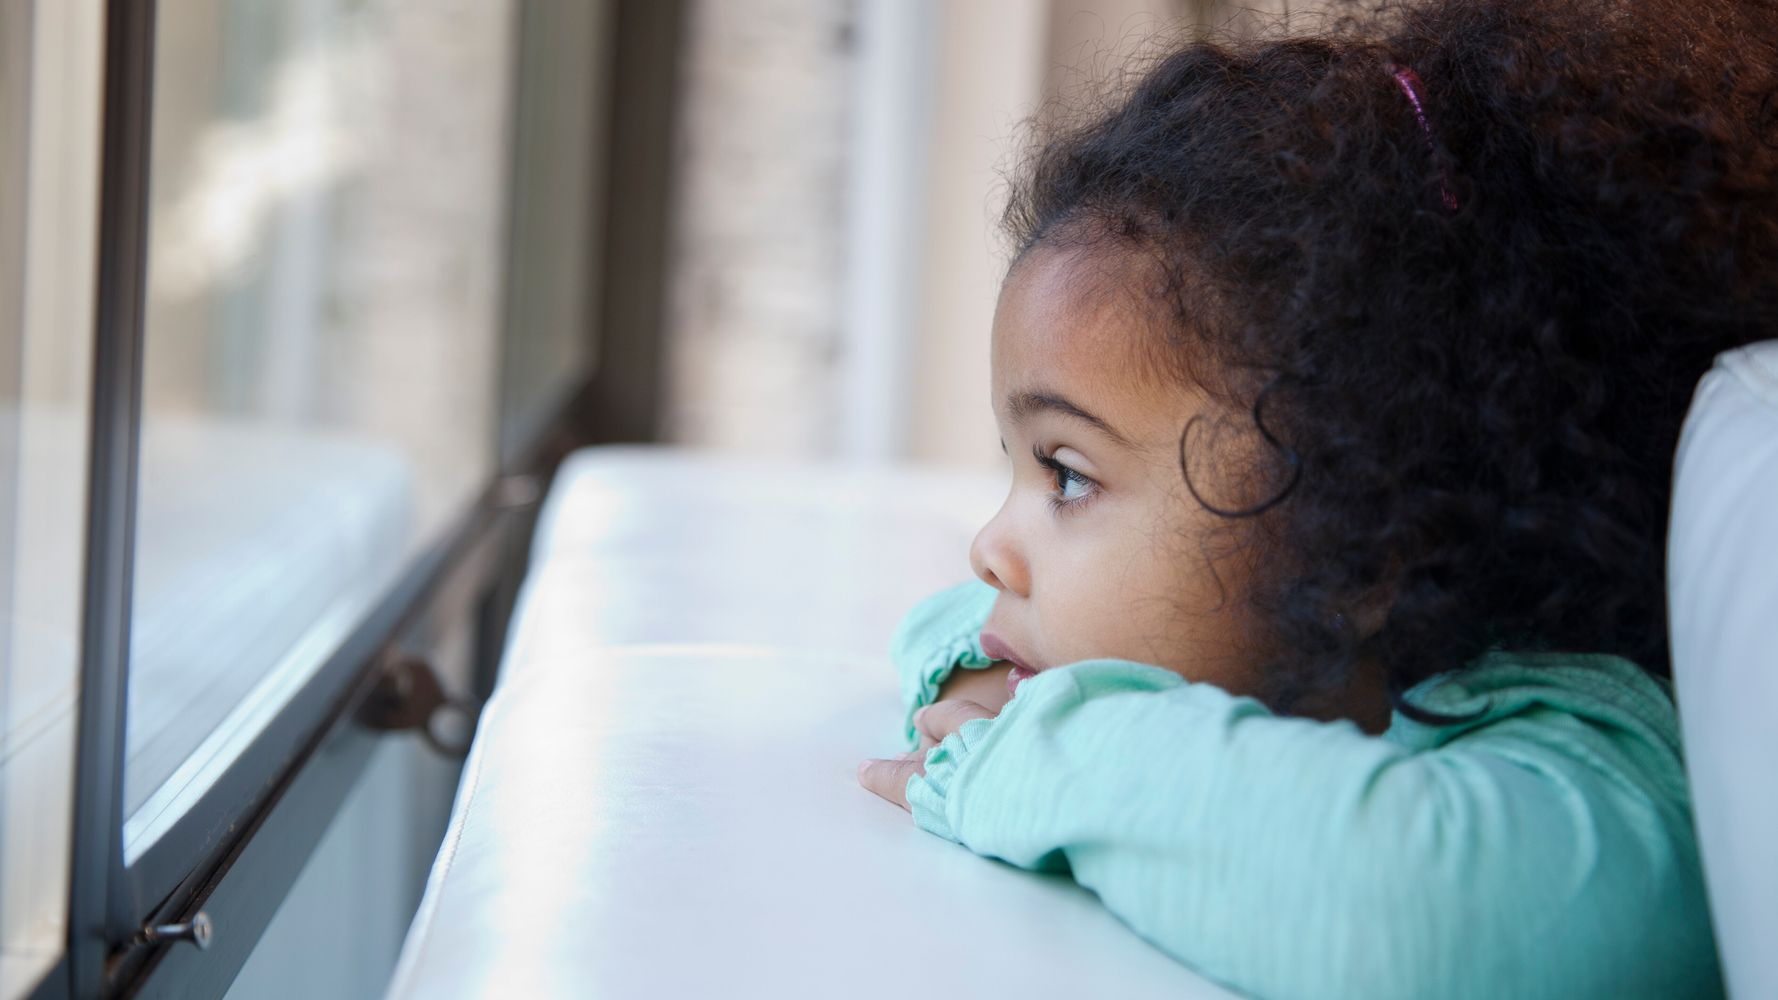 10 Mental Health Signs To Watch Out For In Kids In The Age Of COVID-19